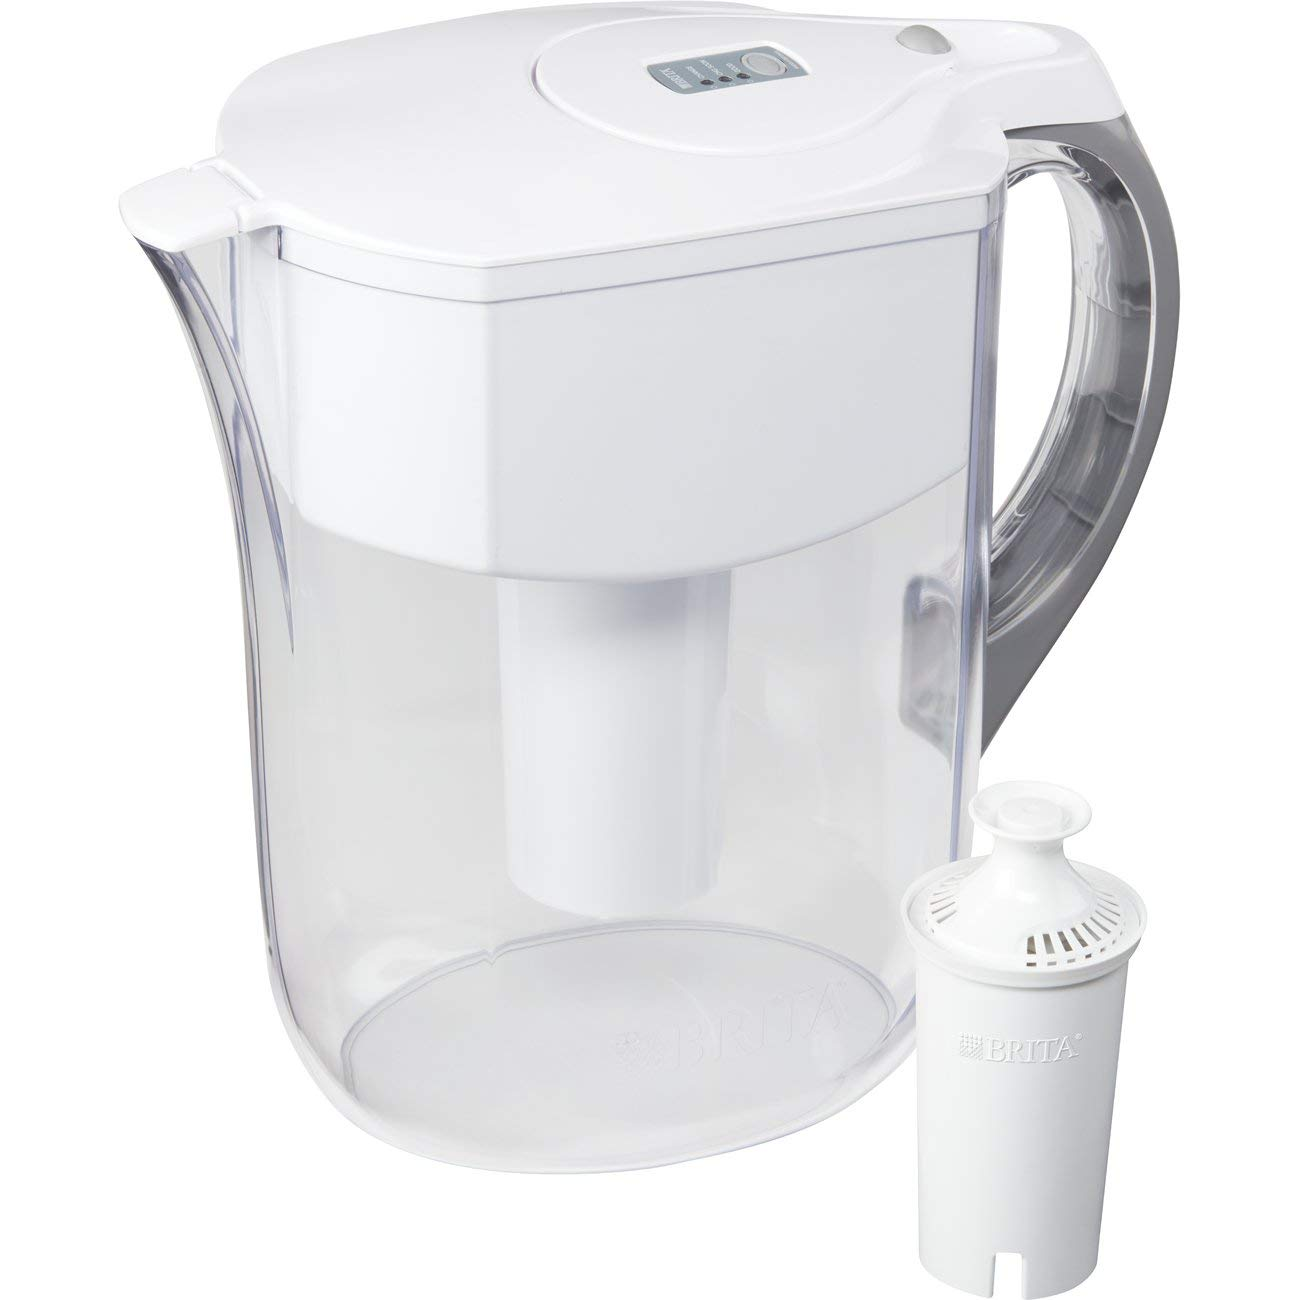 Brita Large 10 Cup Water Filter Pitcher with 1 Standard Filter, BPA Free – Grand, Multiple Colors - 35939